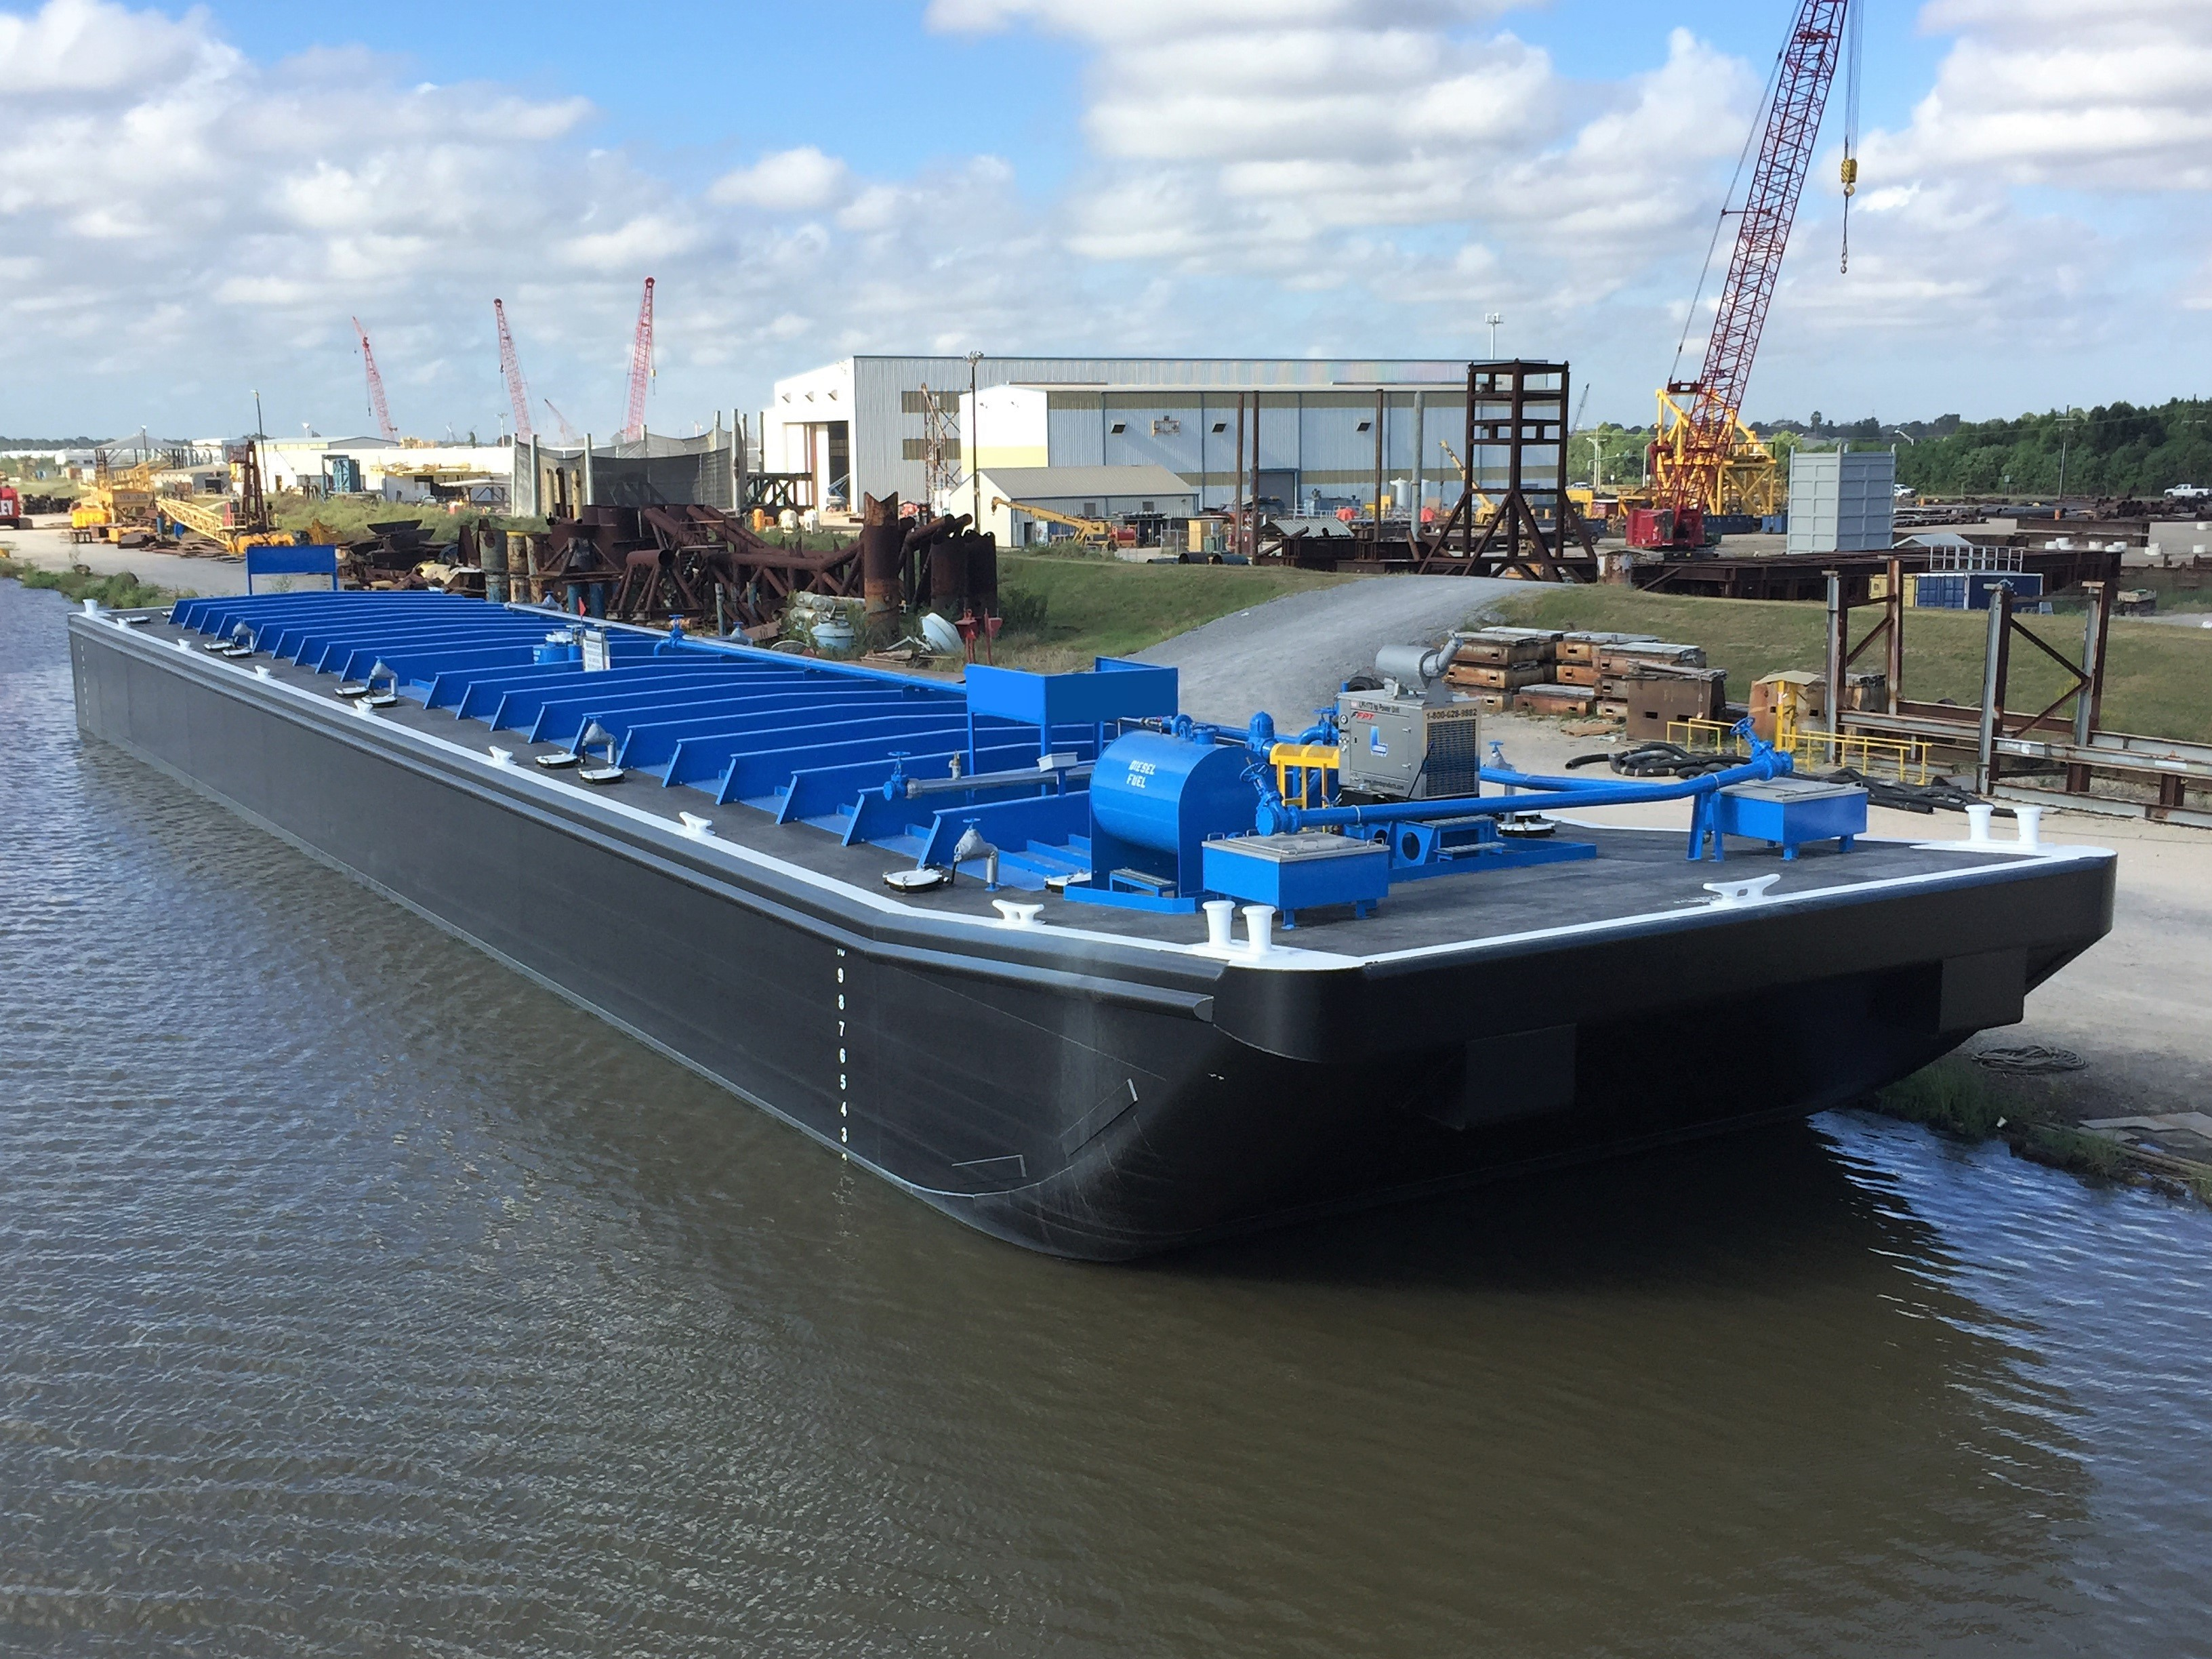 Commercial vessel design - repair tank barge